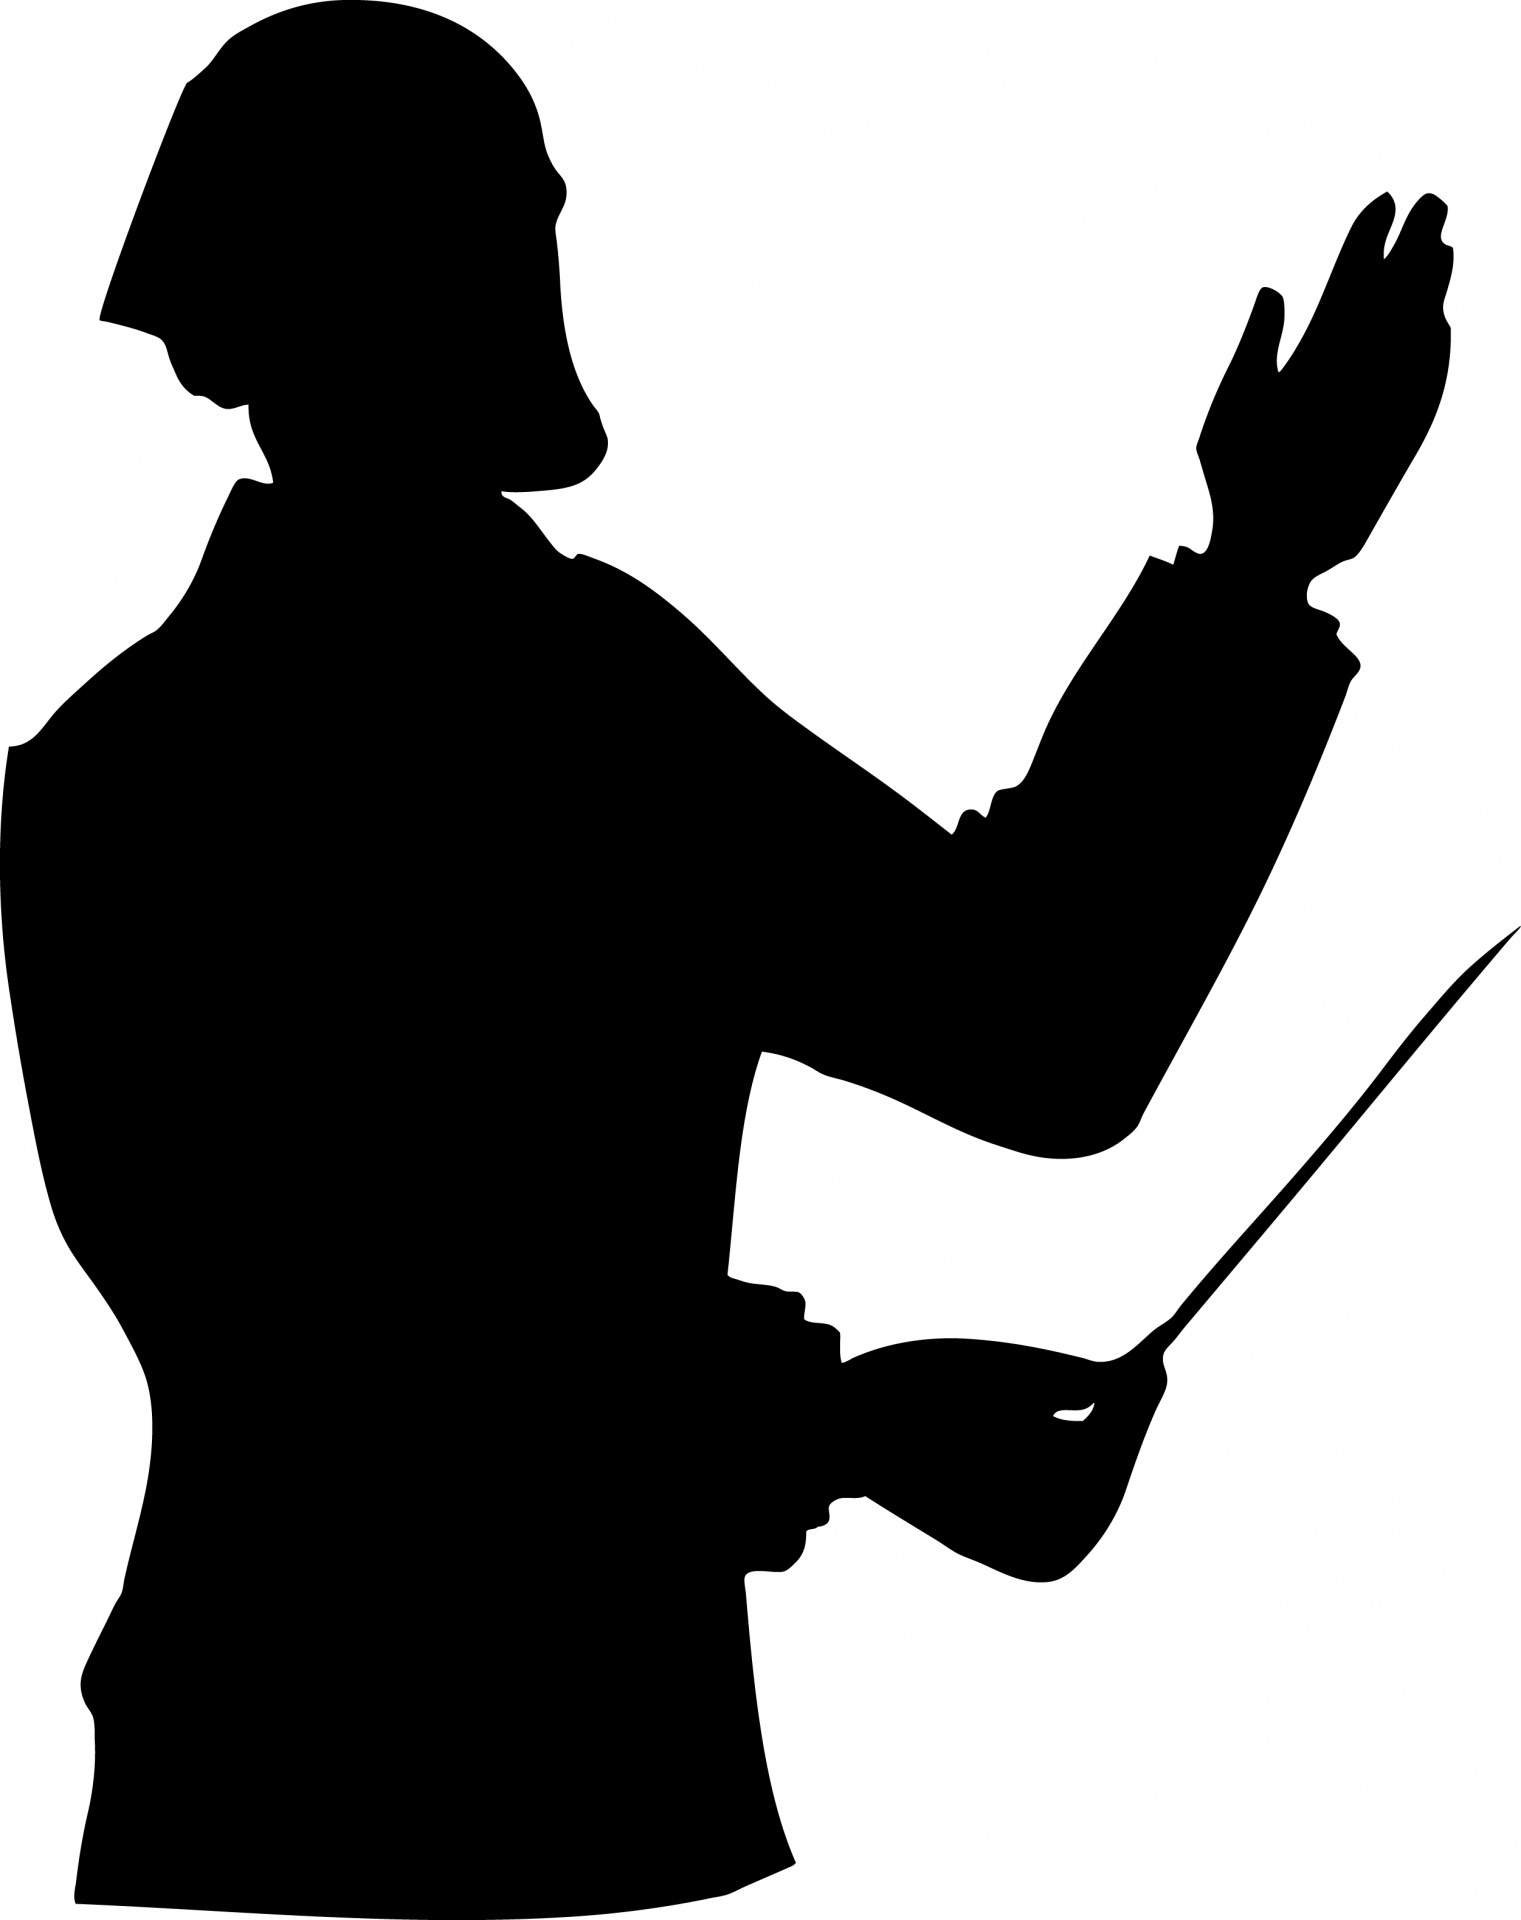 1521x1920 Music Conductor Silhouette Free Stock Photo